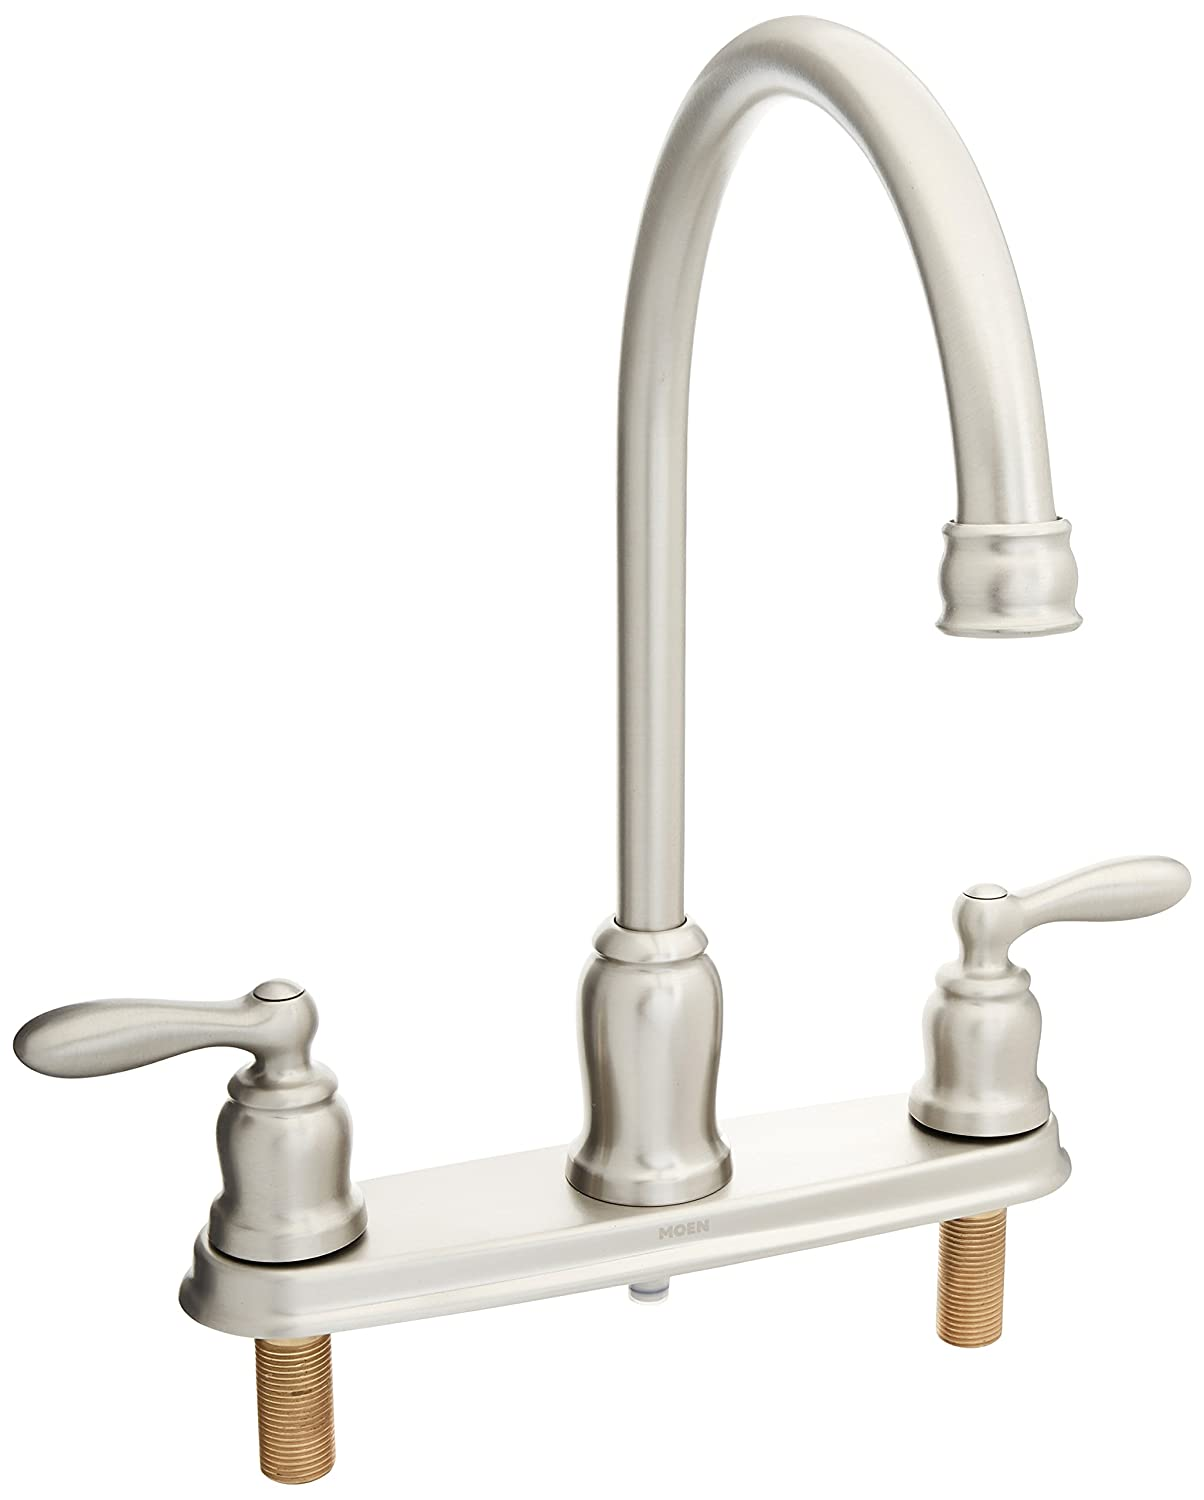 Moen CA87060SRS High-Arc Kitchen Faucet with Side Spray from the Caldwell Collection, Spot Resist Stainless